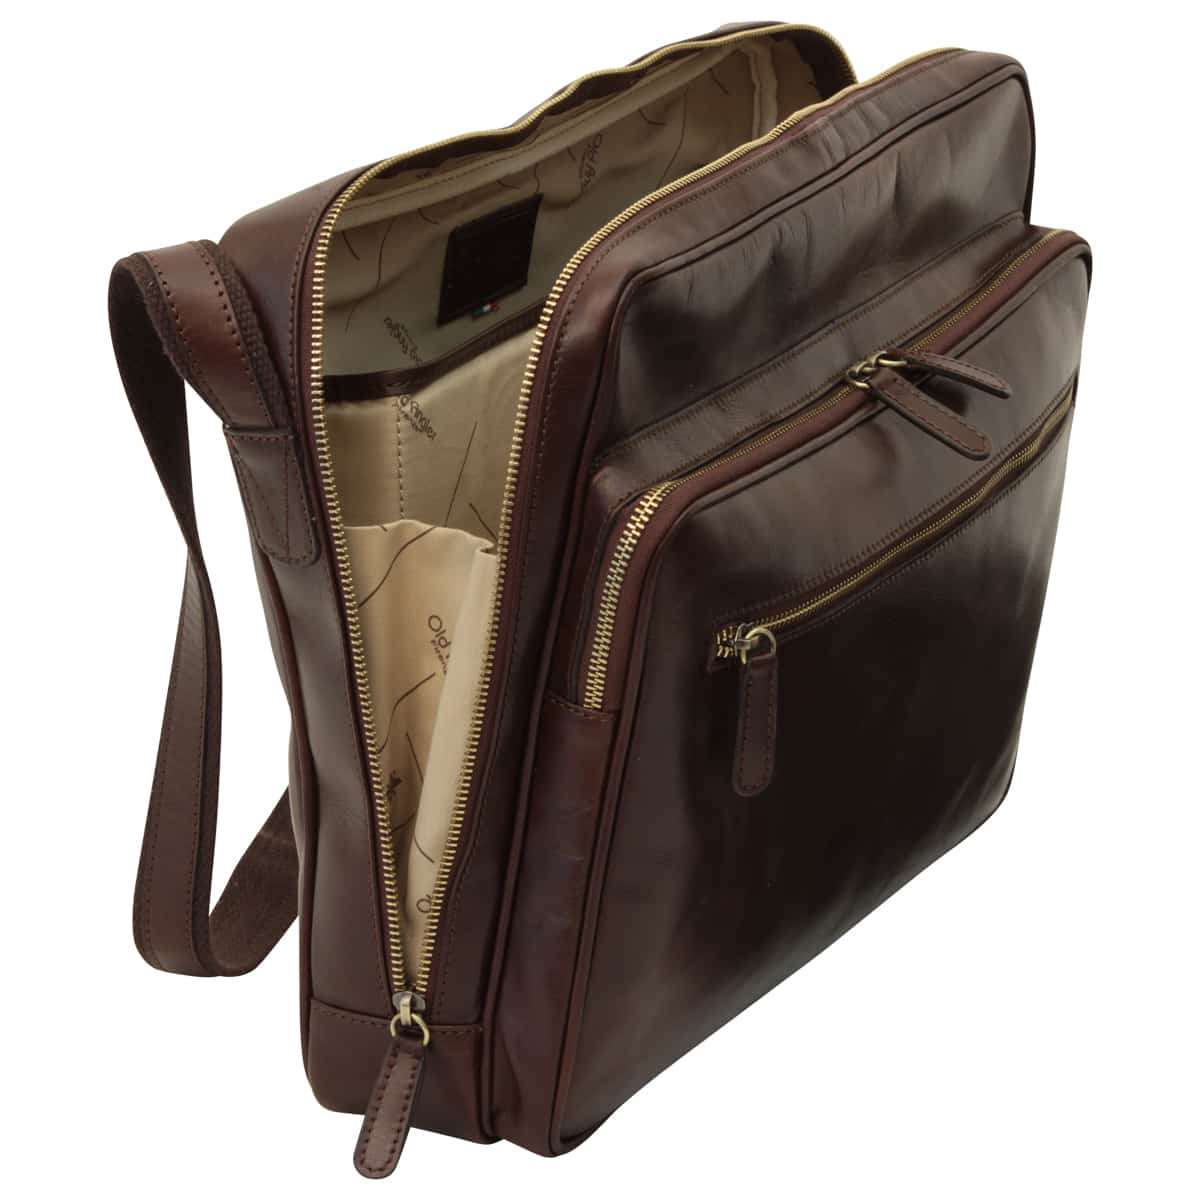 Large leather bag with zip closures - Dark Brown | 409289TM UK | Old Angler Firenze